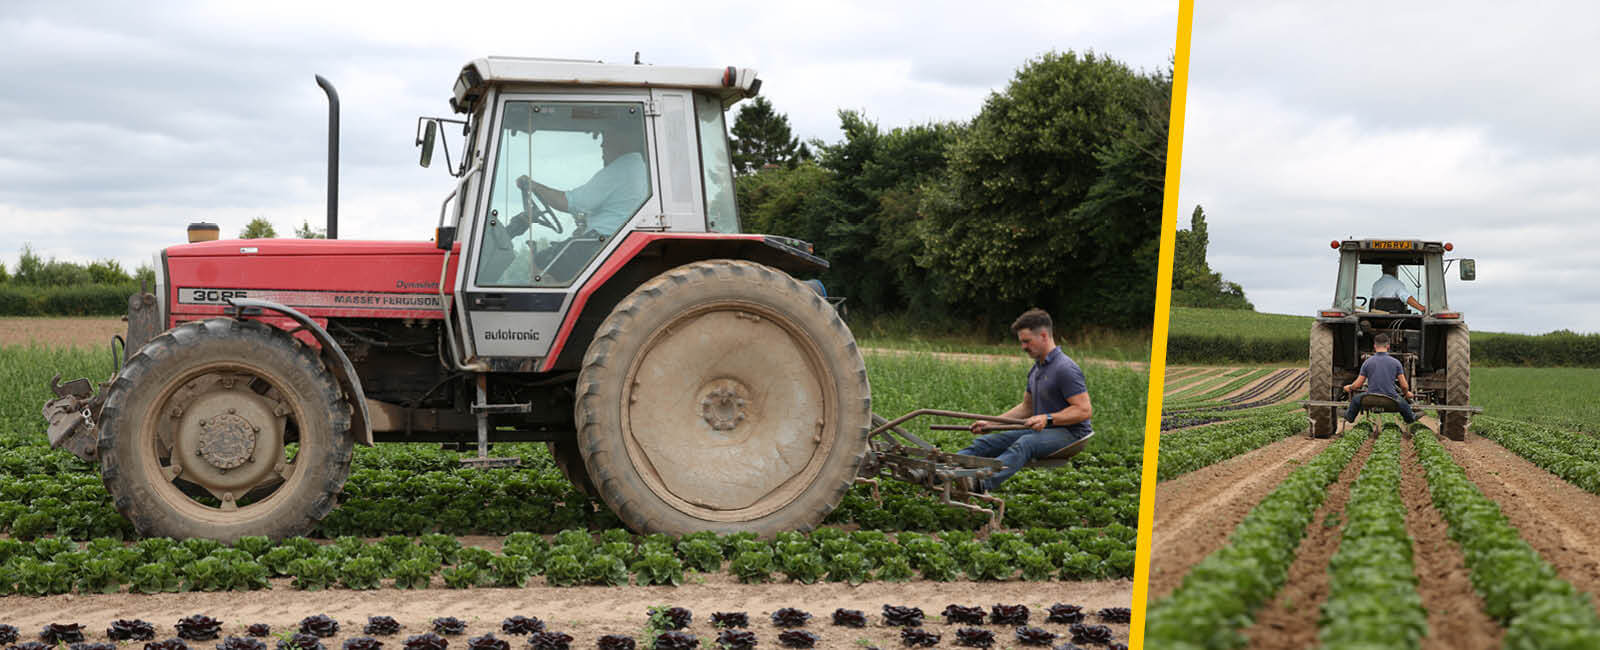 Ben and Colin Andrews ploughing lettuce